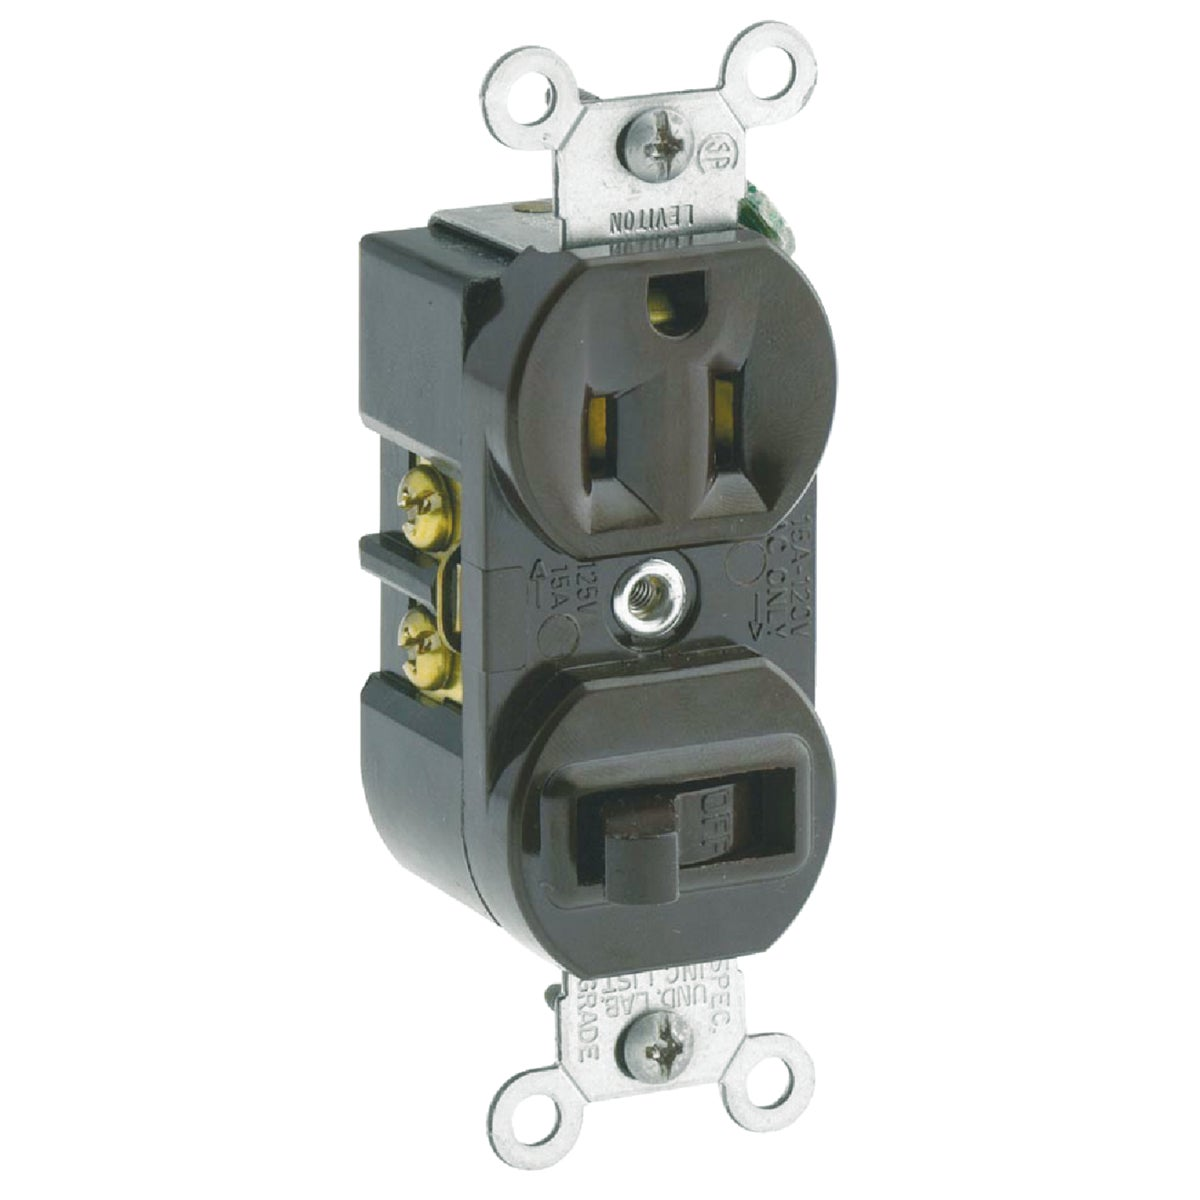 BRN SWITCH/OUTLET - S00-5225-00S by Leviton Mfg Co